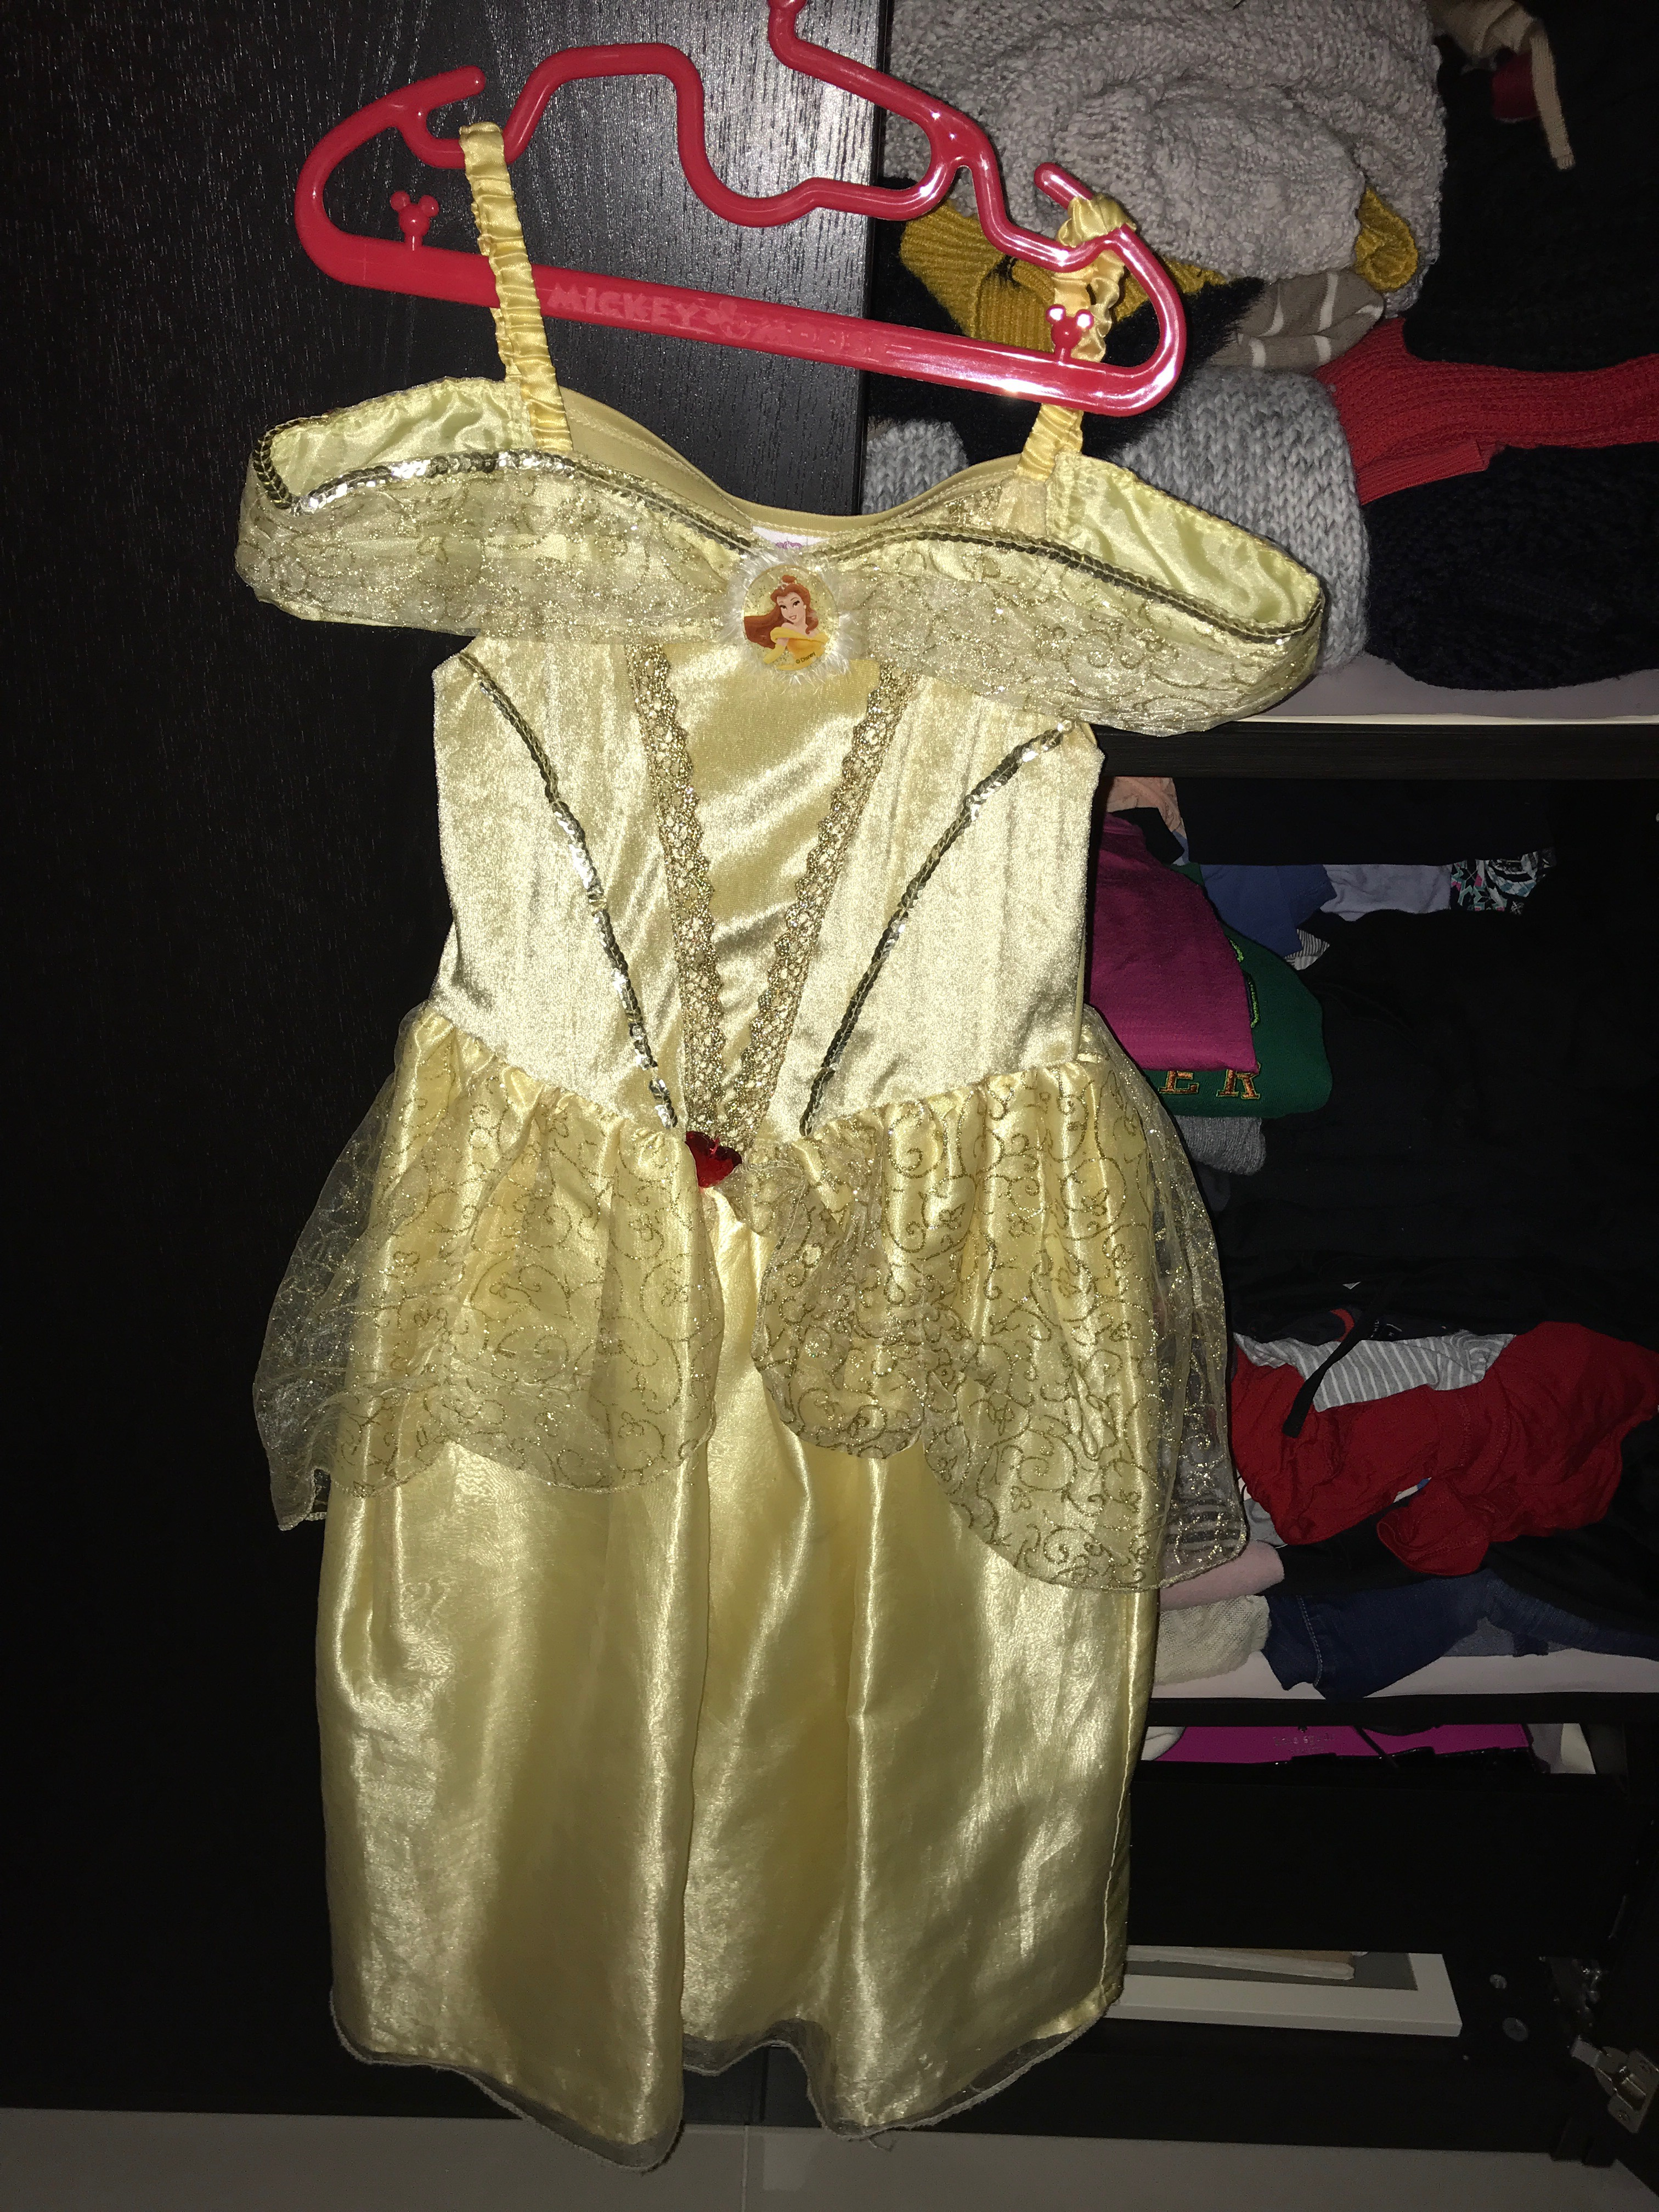 Two Princess dresses for the school drama image